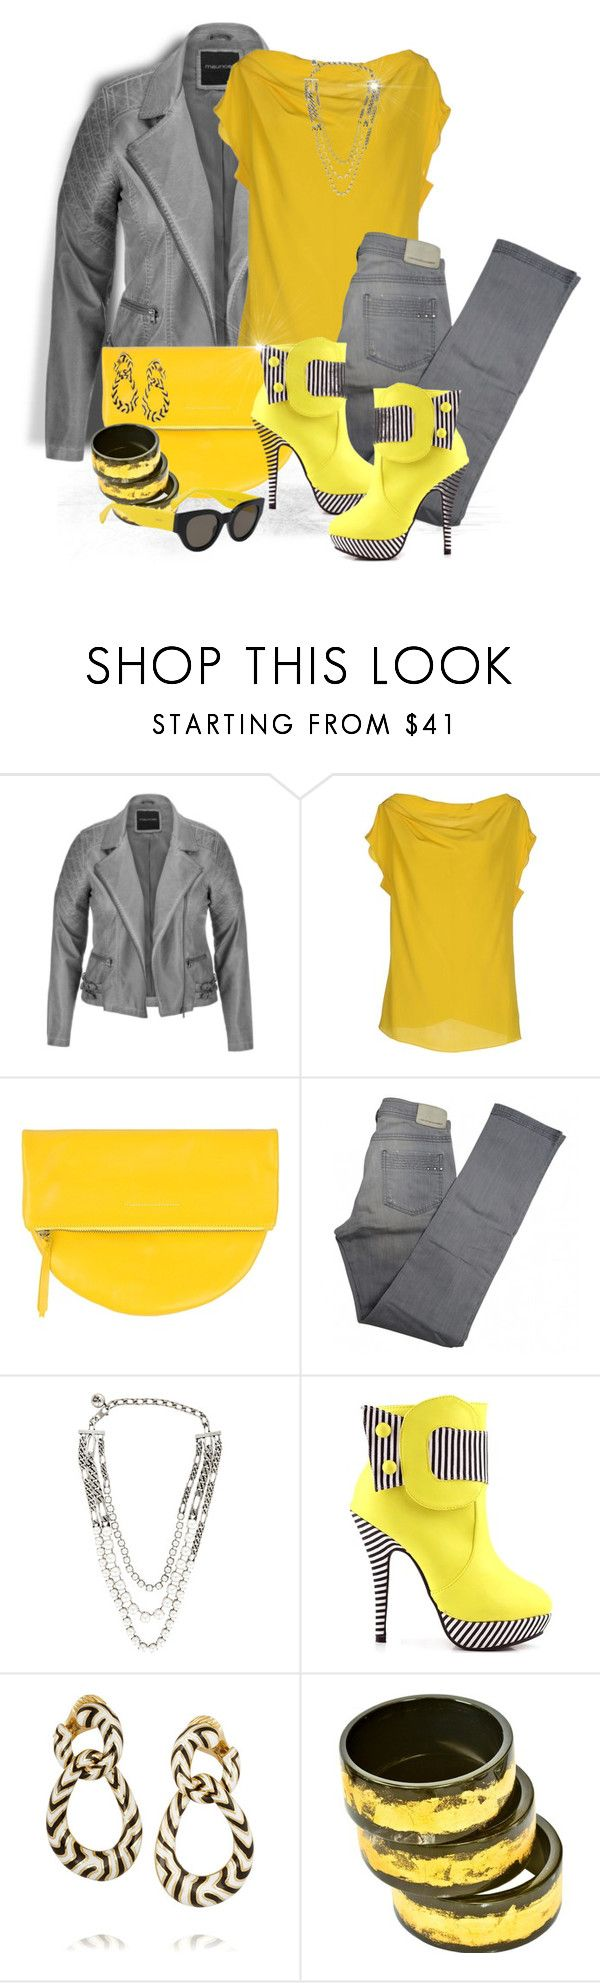 """Causual Yellow and Gray"" by loveroses123 ❤ liked on Polyvore featuring maurices, Vionnet, MM6 Maison Margiela, Comptoir Des Cotonniers, Lanvin, David Webb, Adele Dejak and CÉLINE"